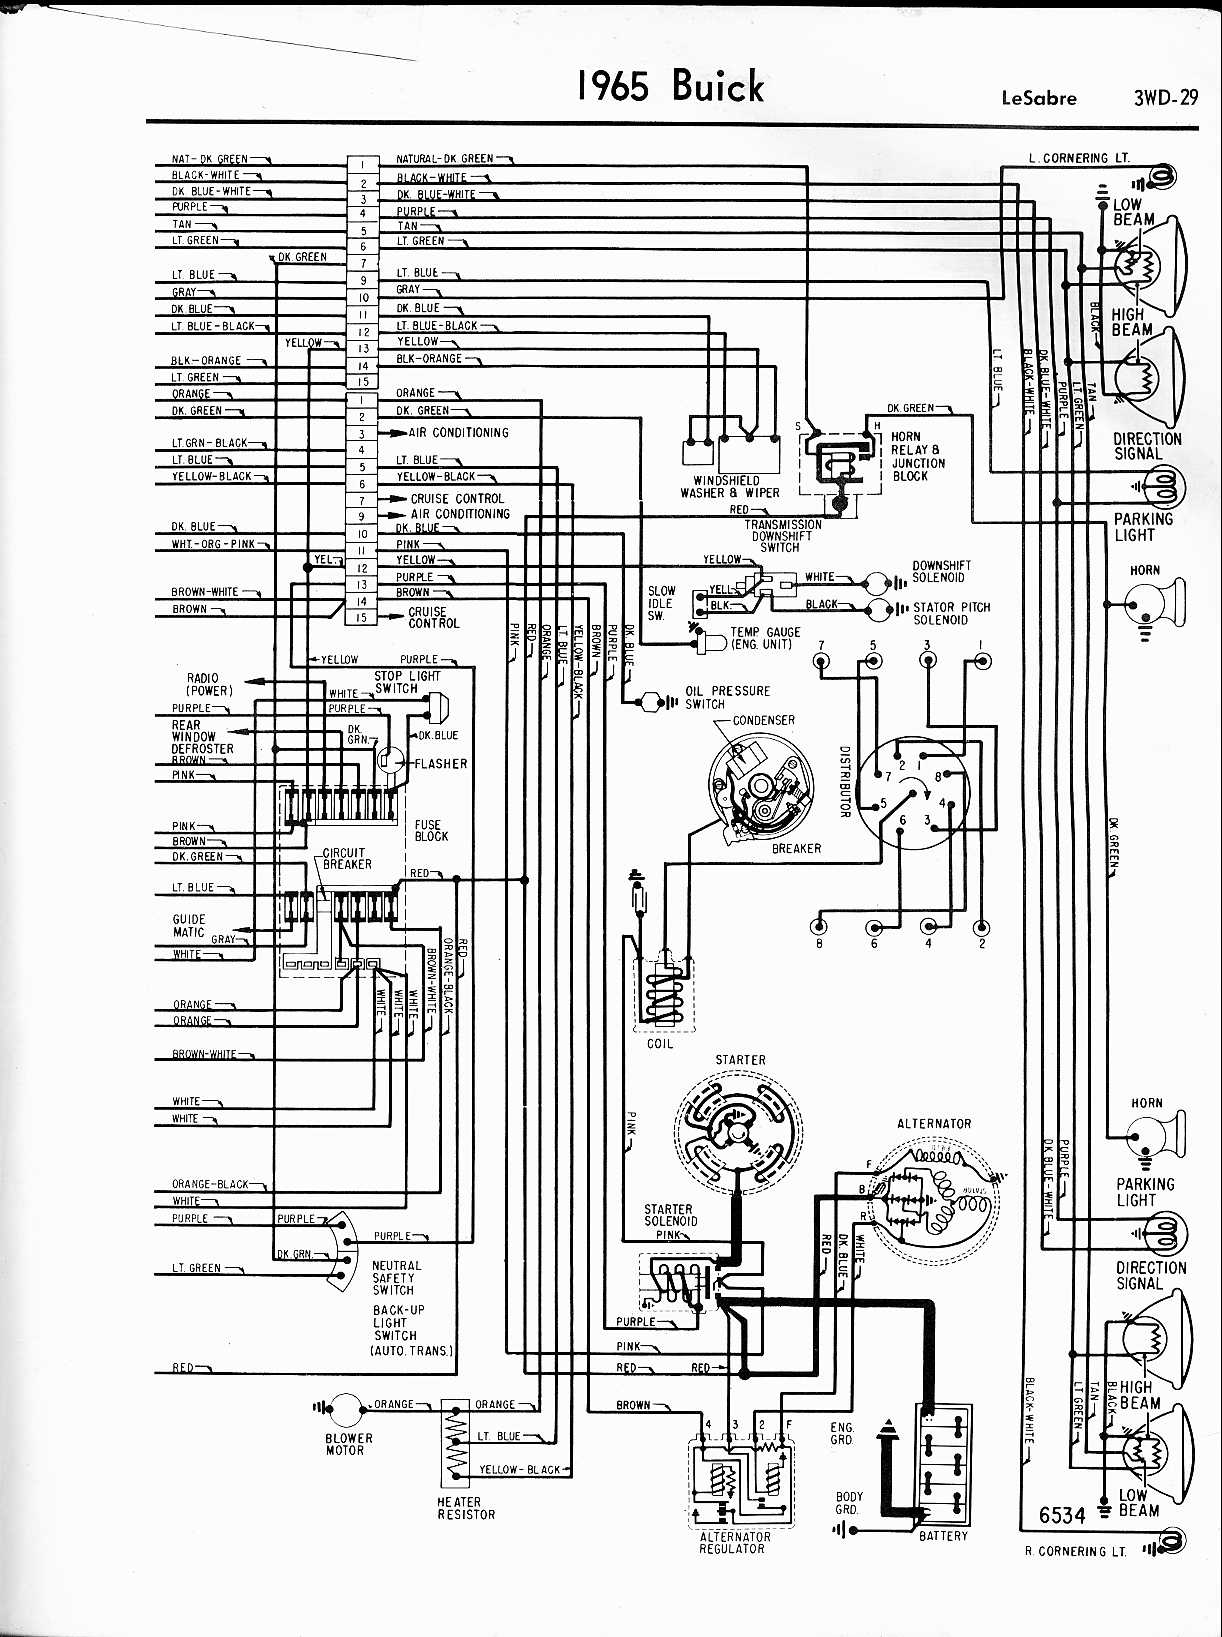 66 Cutlass Wiring Diagram Library Vw Beetle 1968 1966 Buick Skylark Harness Content Resource Of U2022 1985